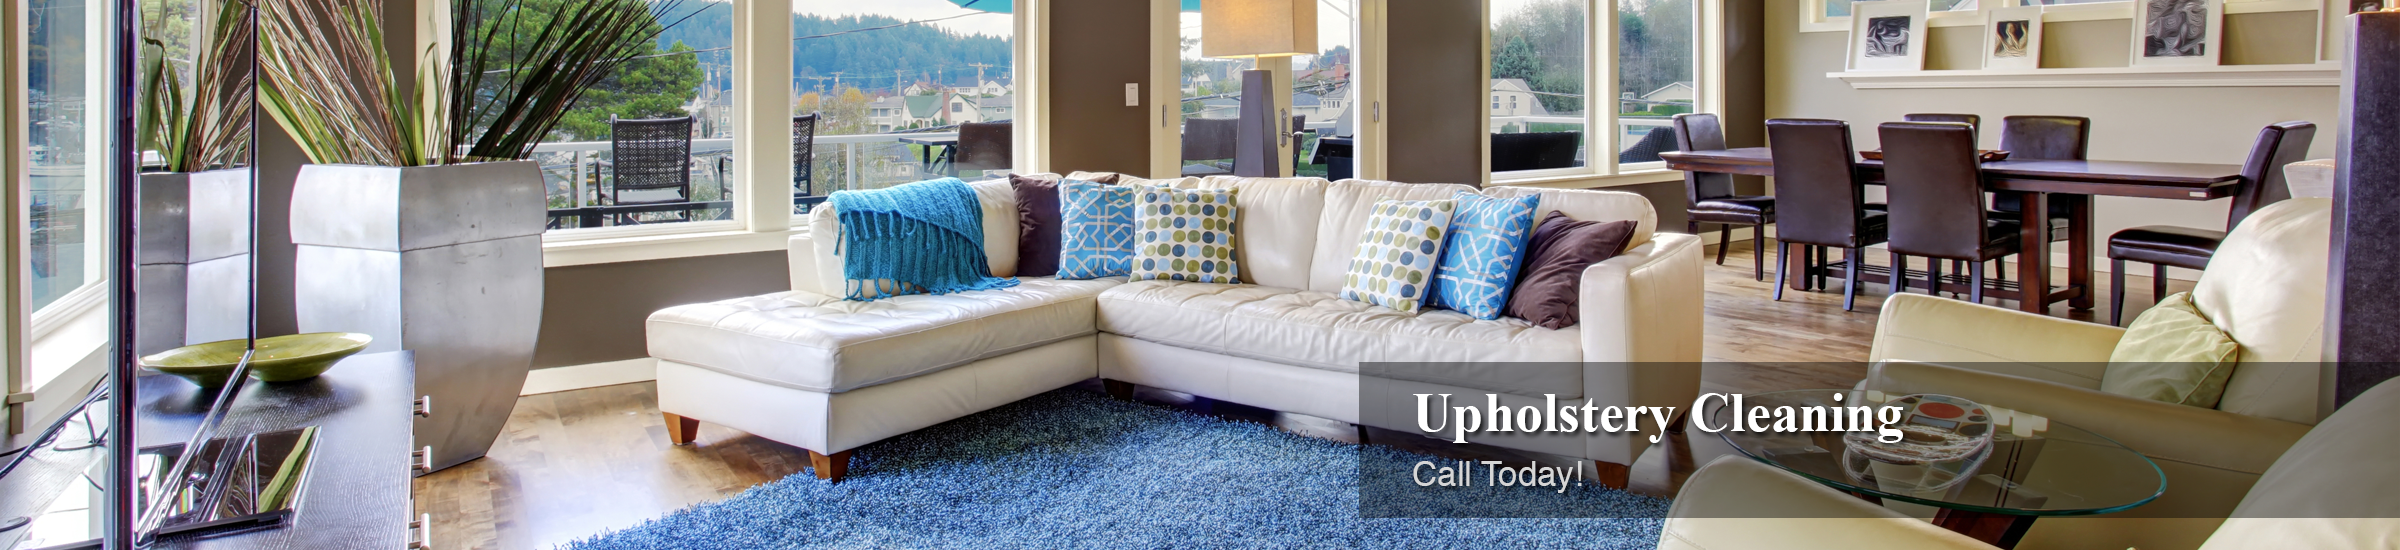 upholstery – call today